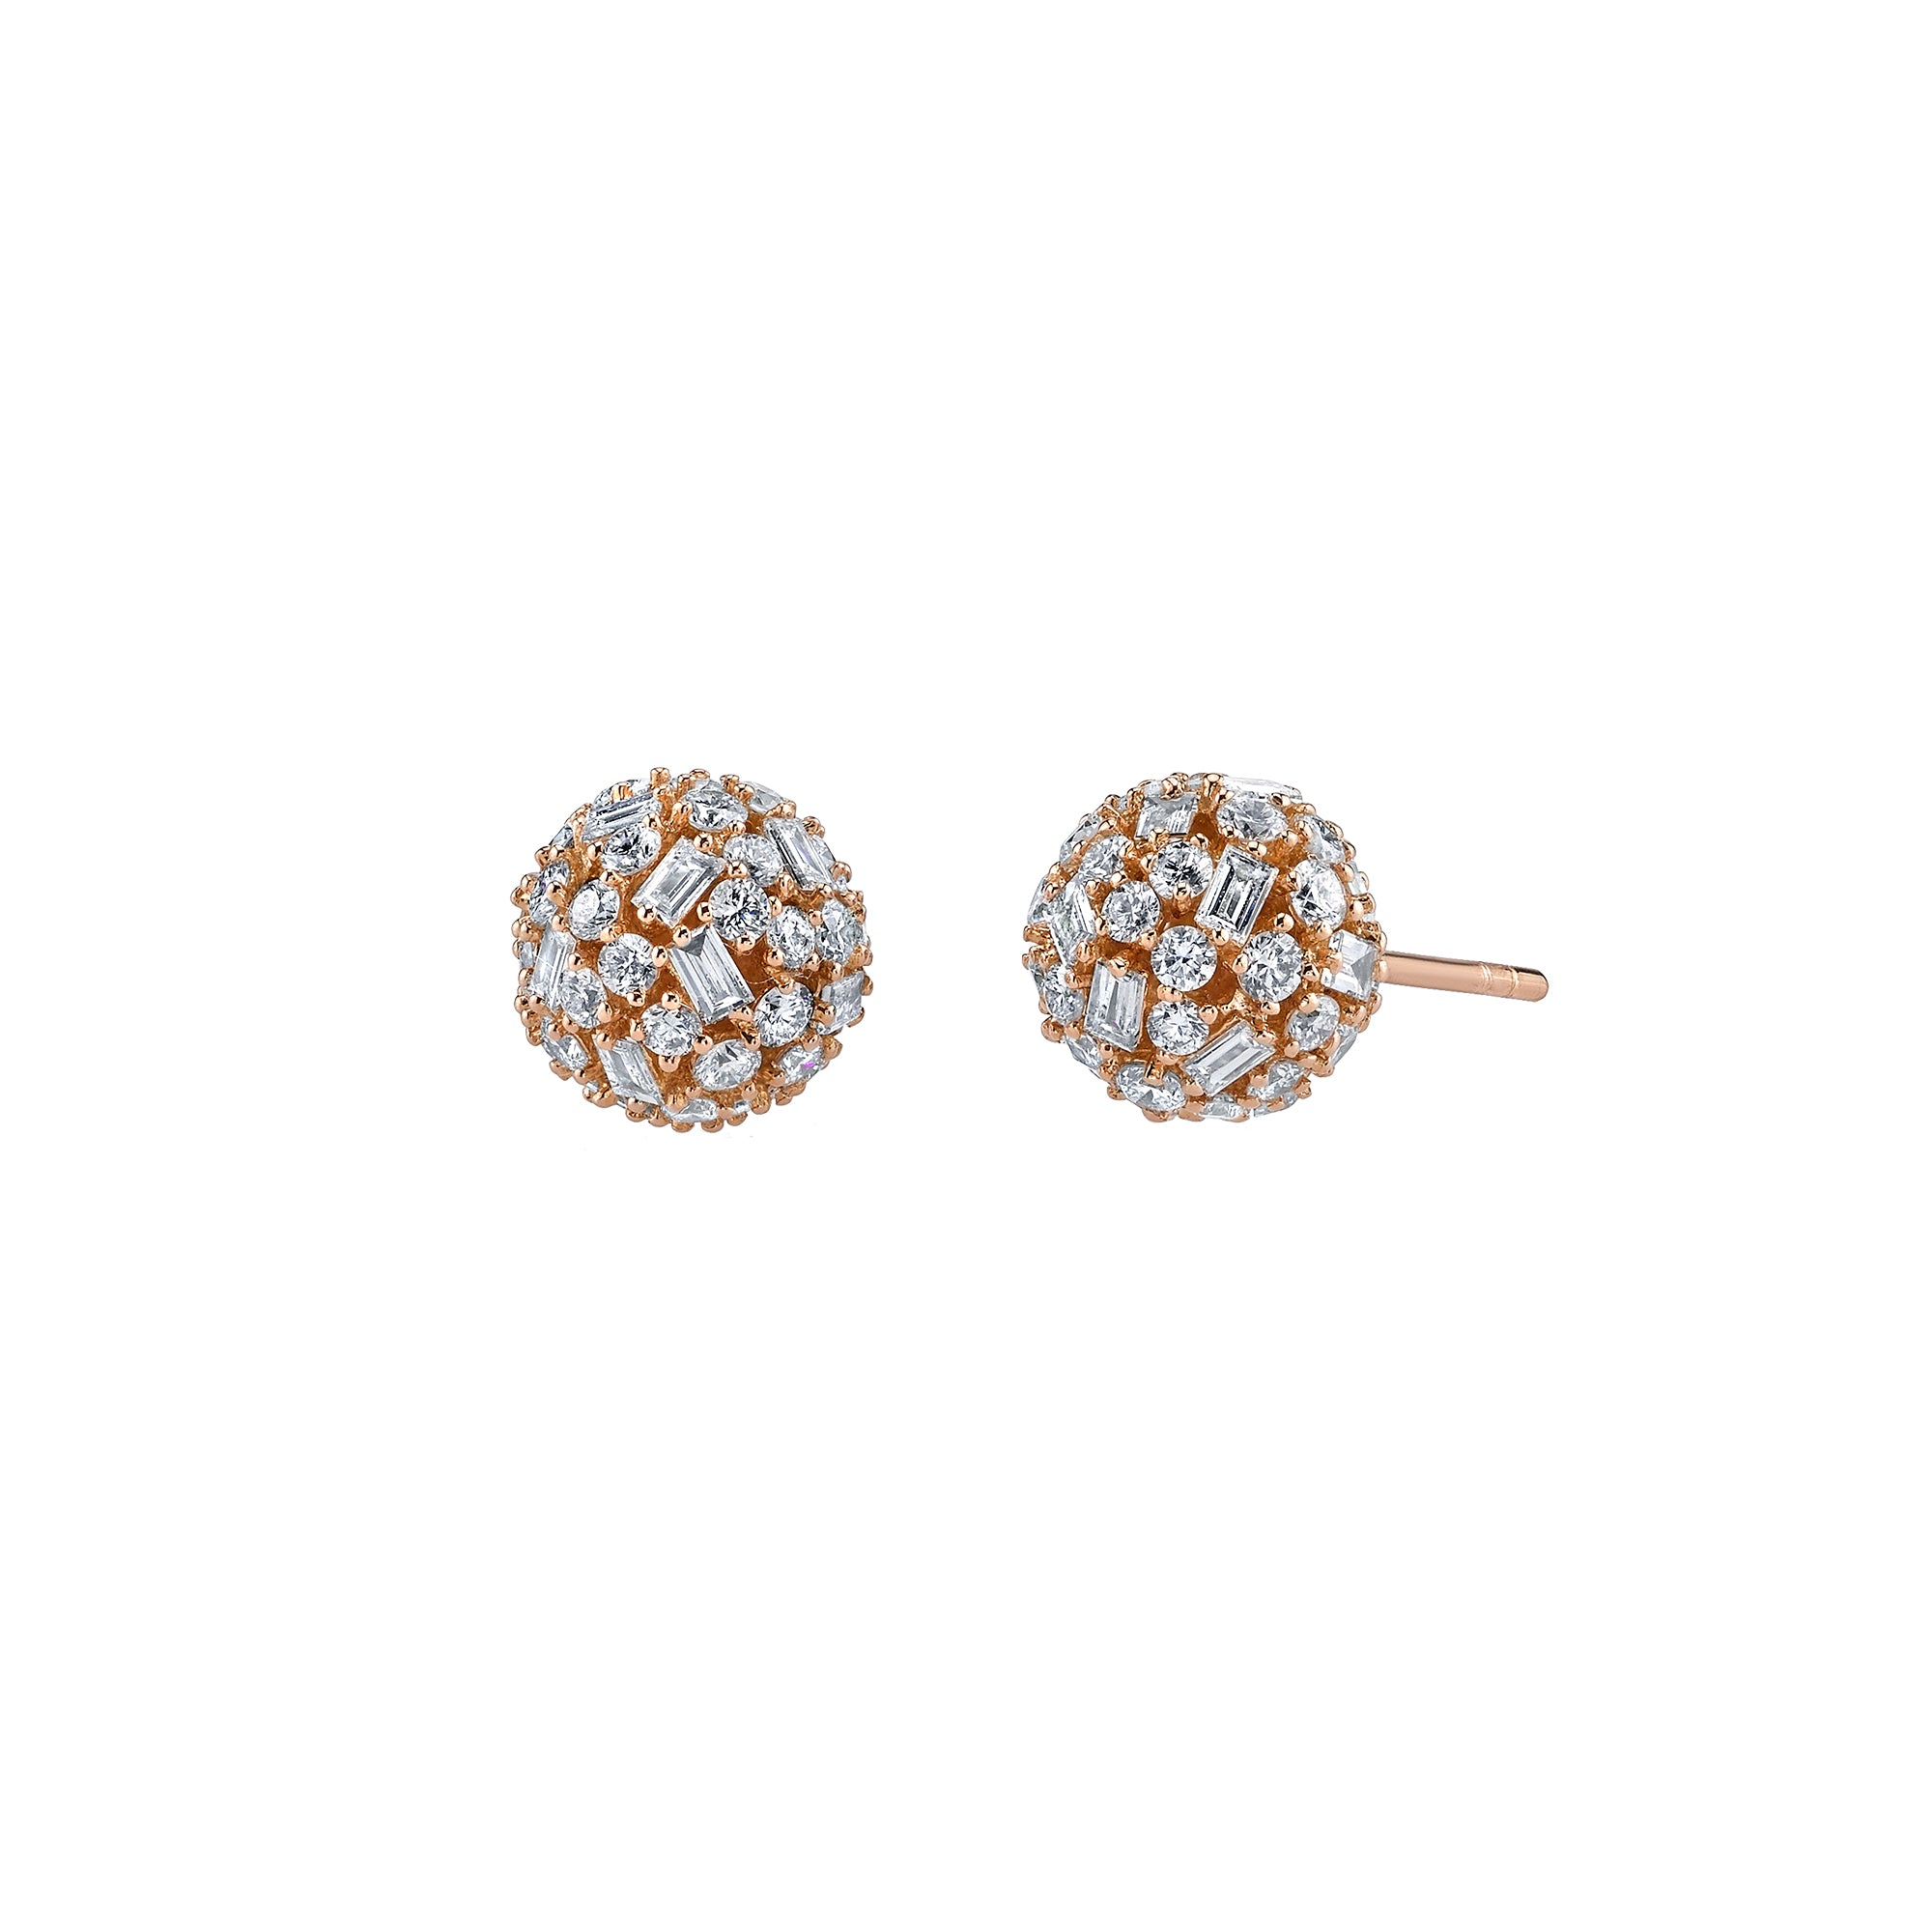 Gold Mixed Cut Diamond Ball Studs by Borgioni for Broken English Jewelry